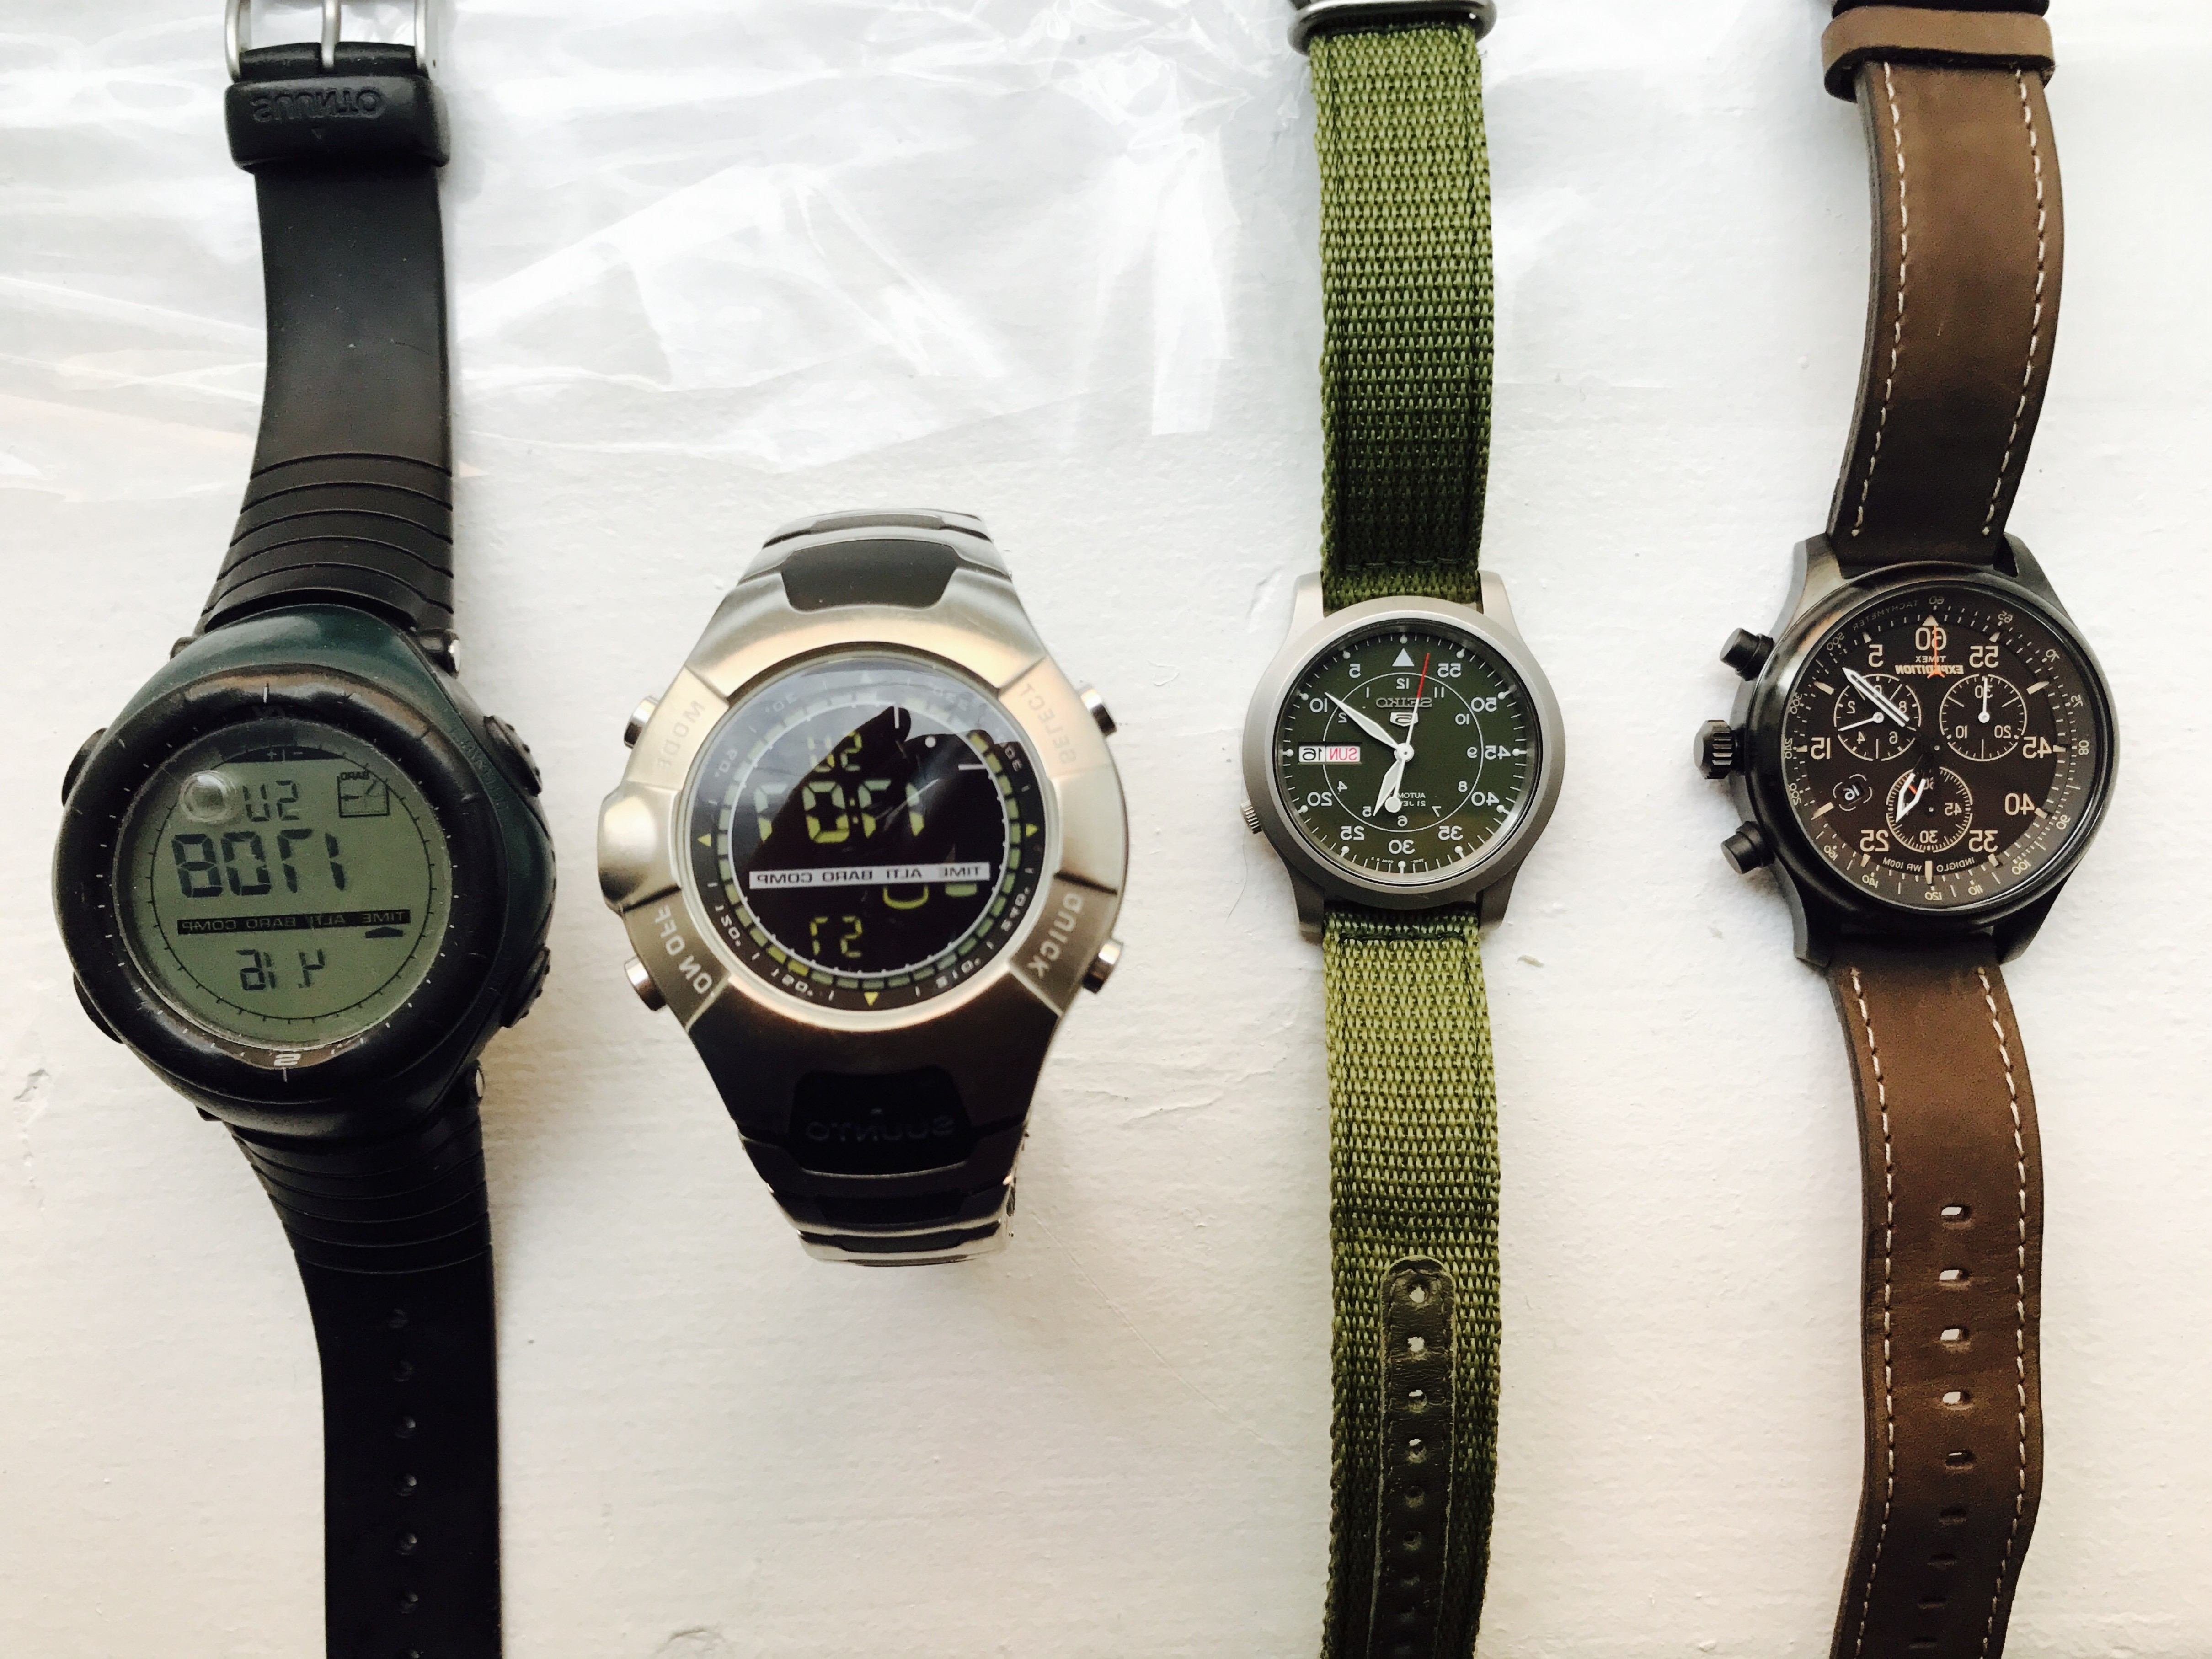 Fancy Wrist Watch Vector: Finding Time Functional Watches Represent Personality